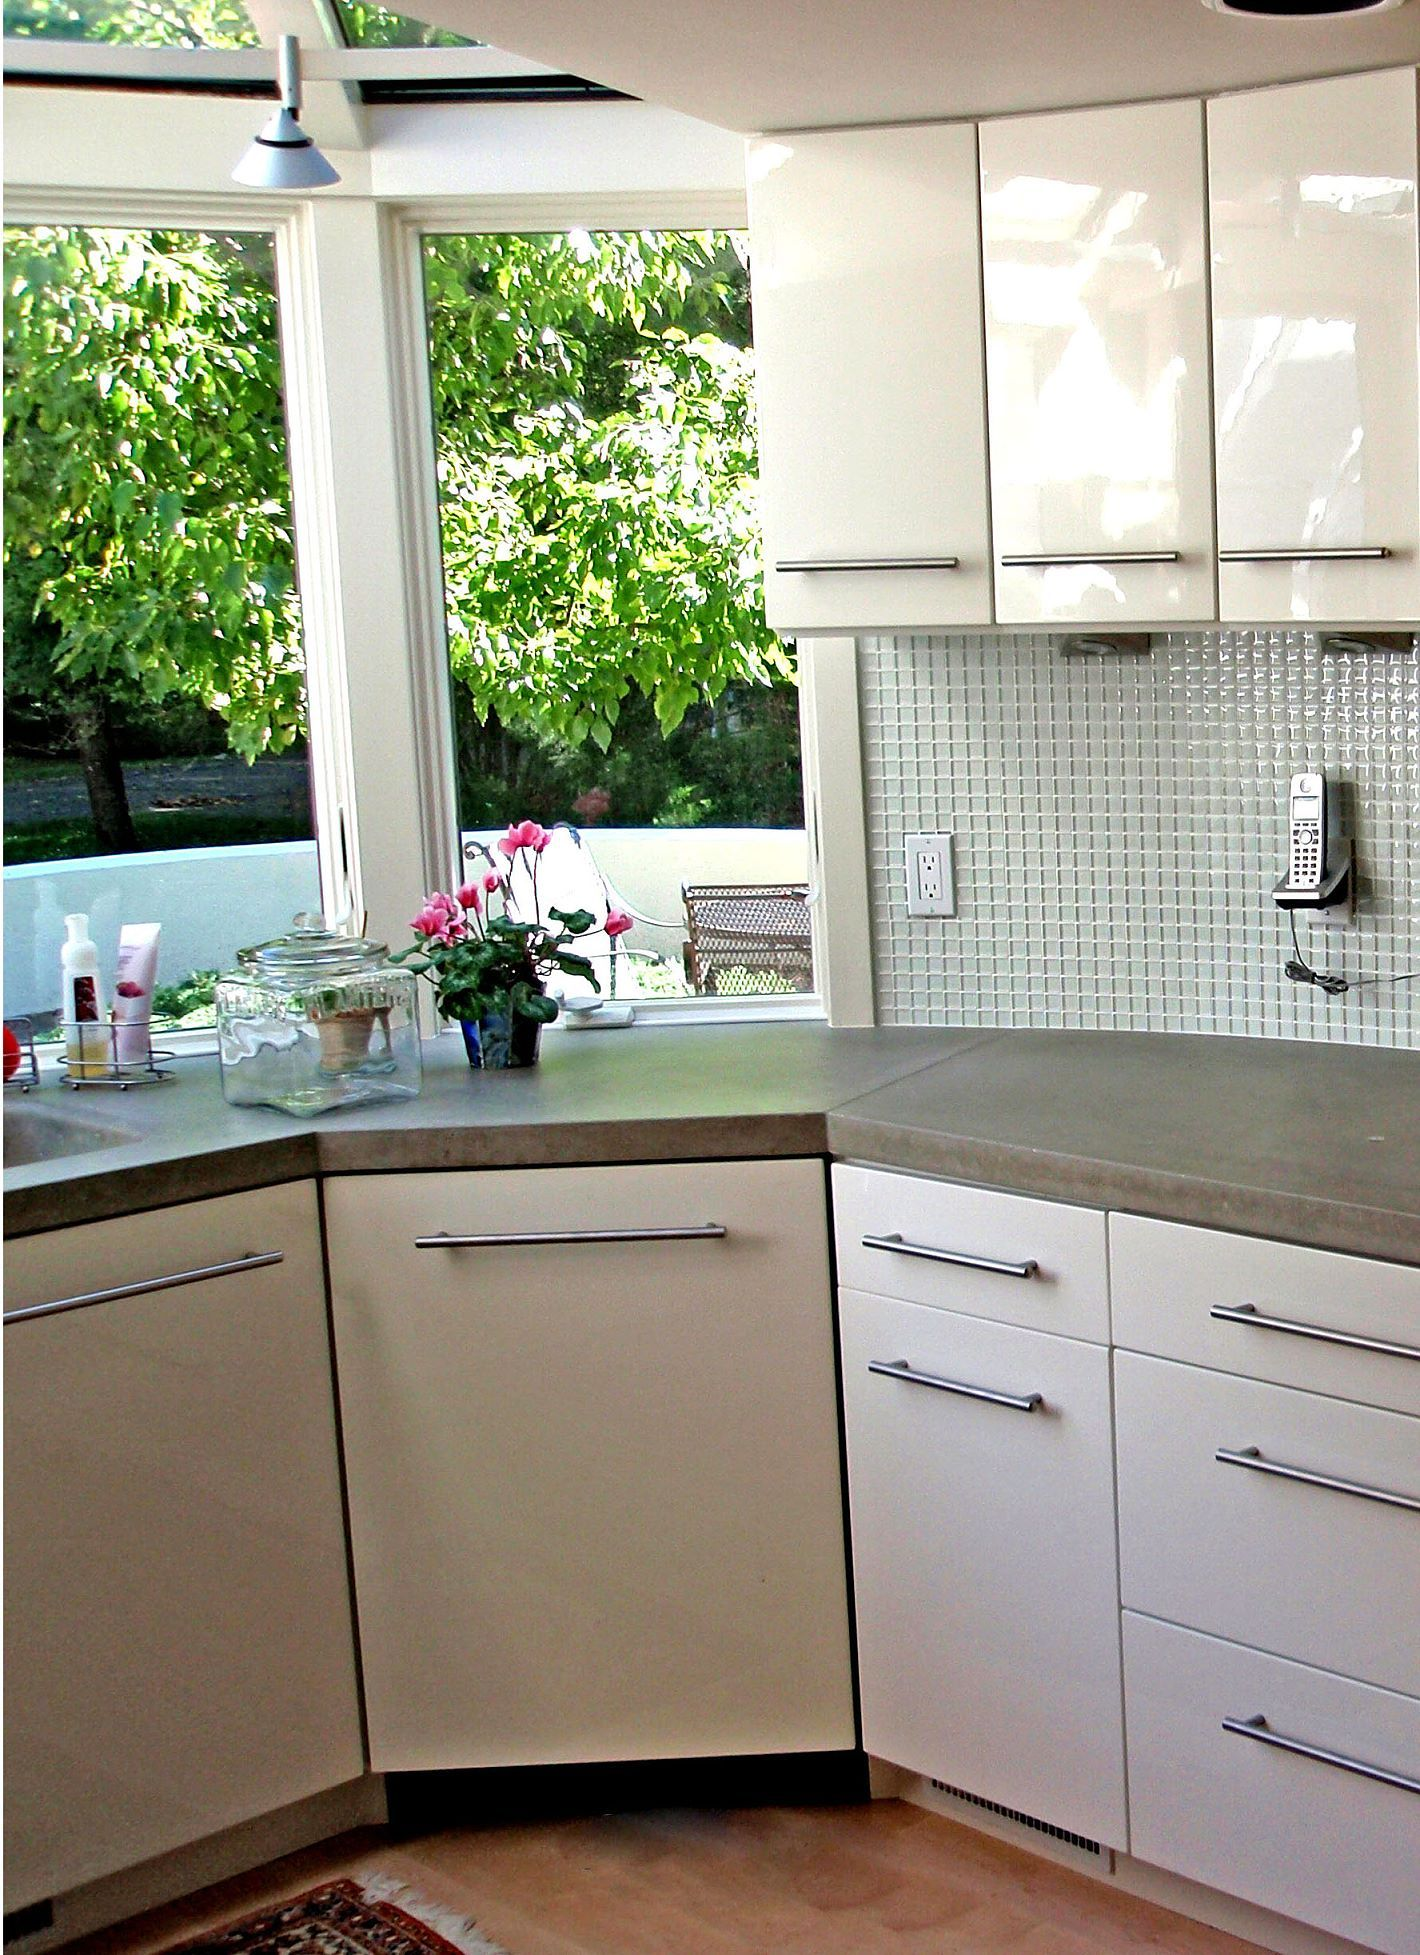 These are Craft-made paint grade -- bad pulls | MM Kitchen ...